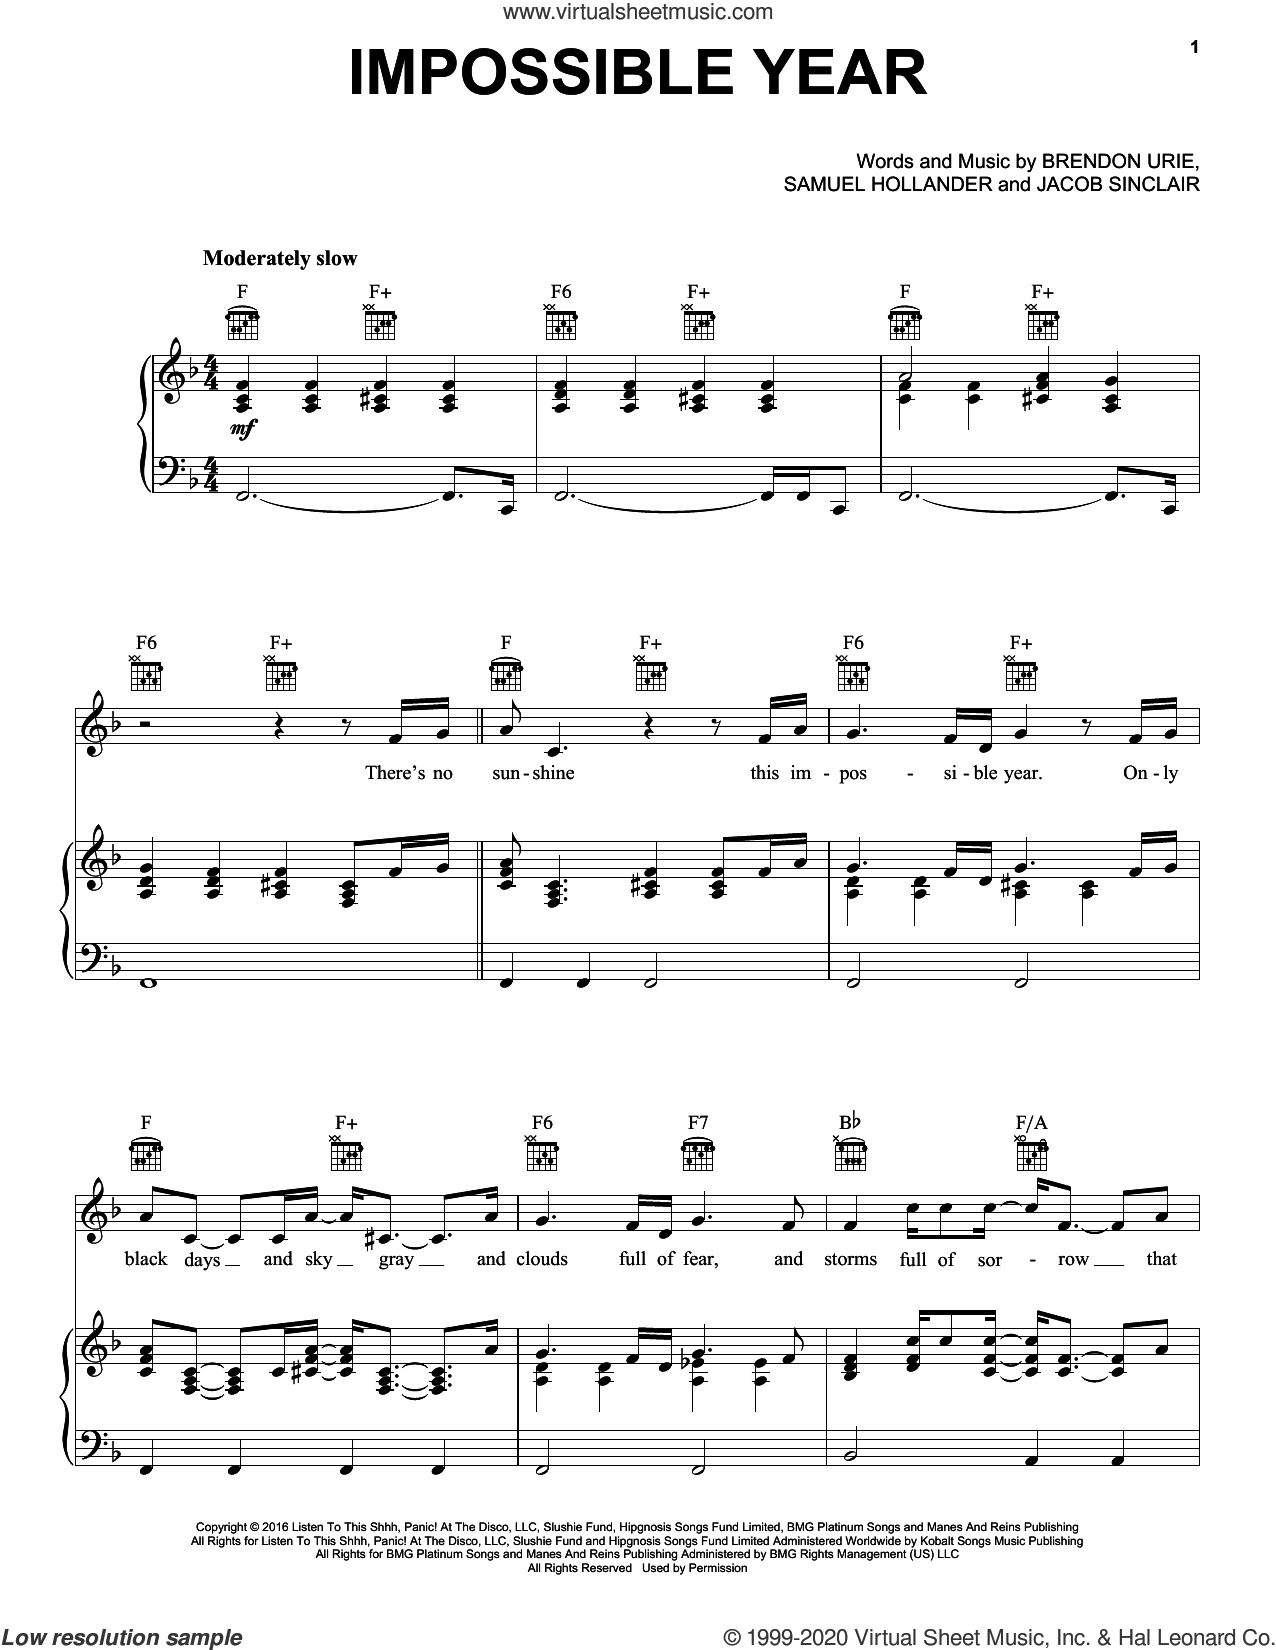 Impossible Year sheet music for voice, piano or guitar by Panic! At The Disco, Brendon Urie, Jacob Sinclair and Sam Hollander, intermediate skill level